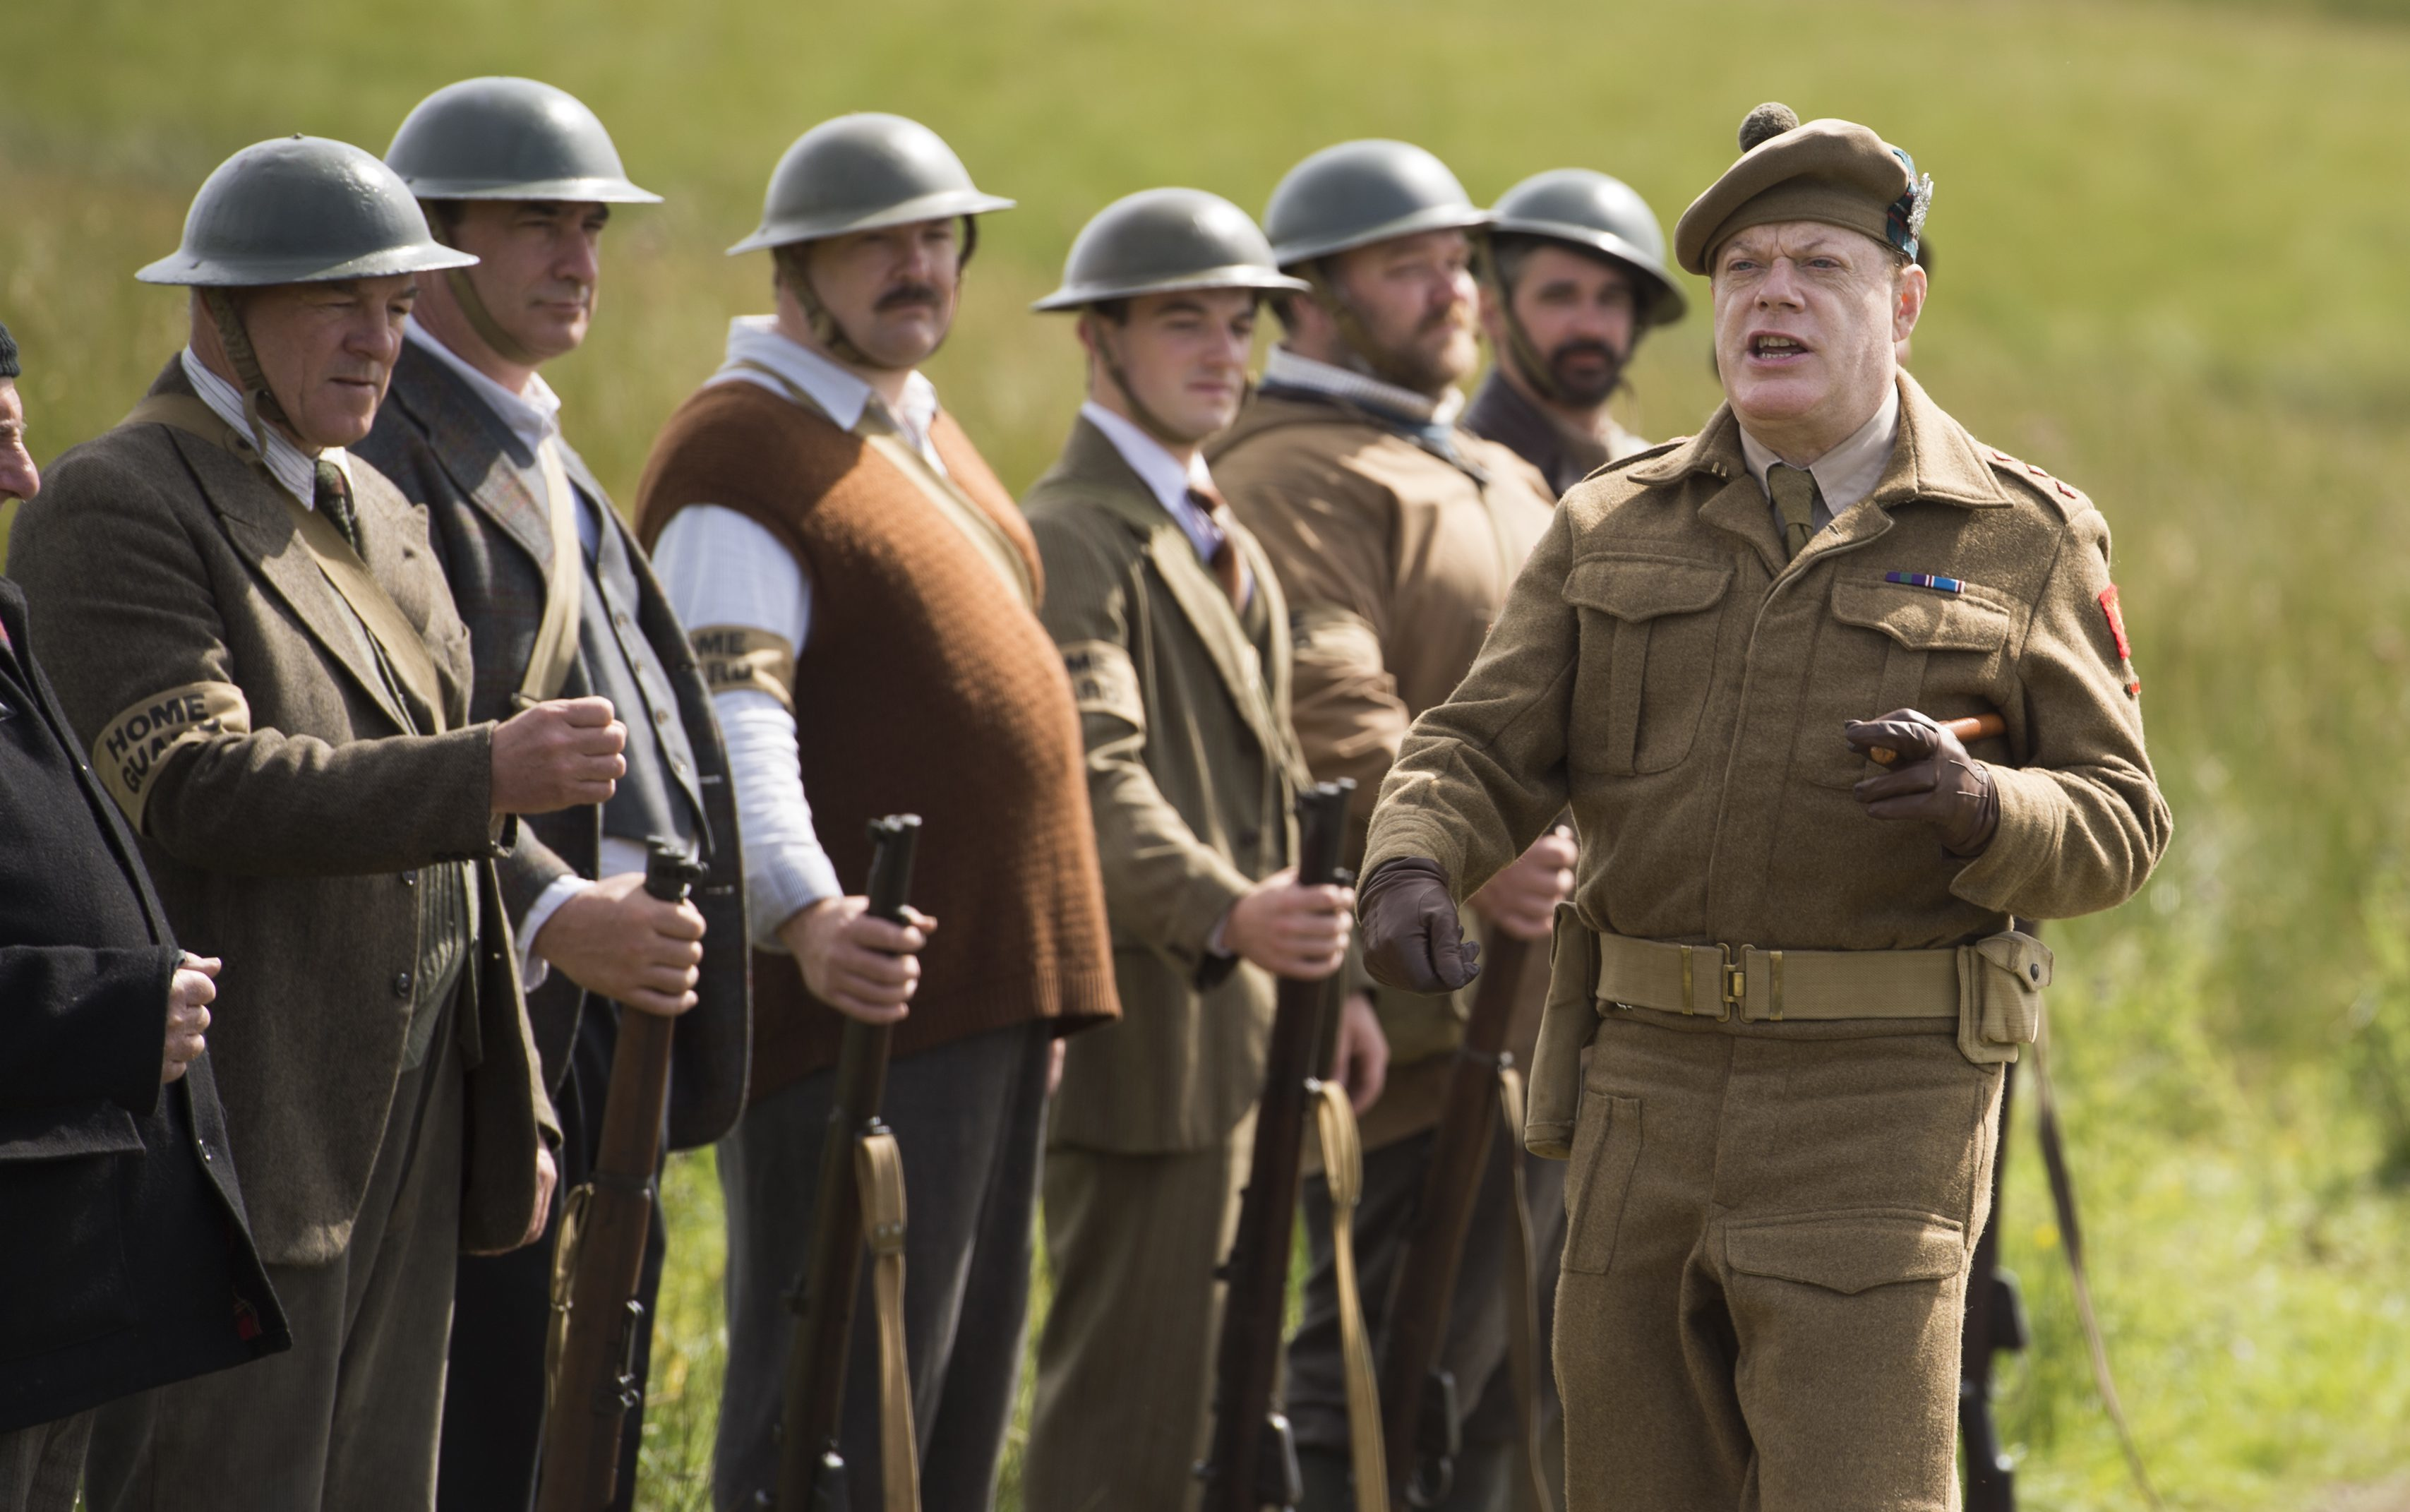 Eddie Izzard dons another beret in a recent remake of Whiskey Galore